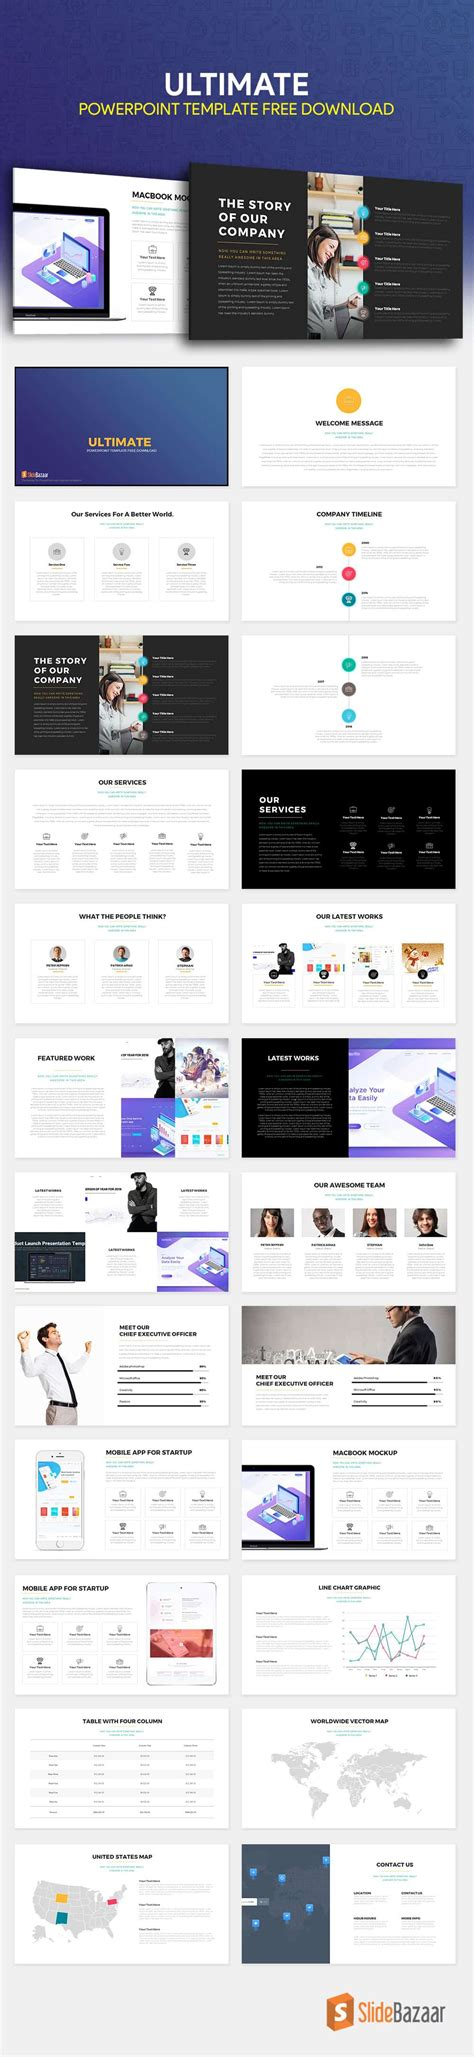 ultimate powerpoint template free download slidebazaar